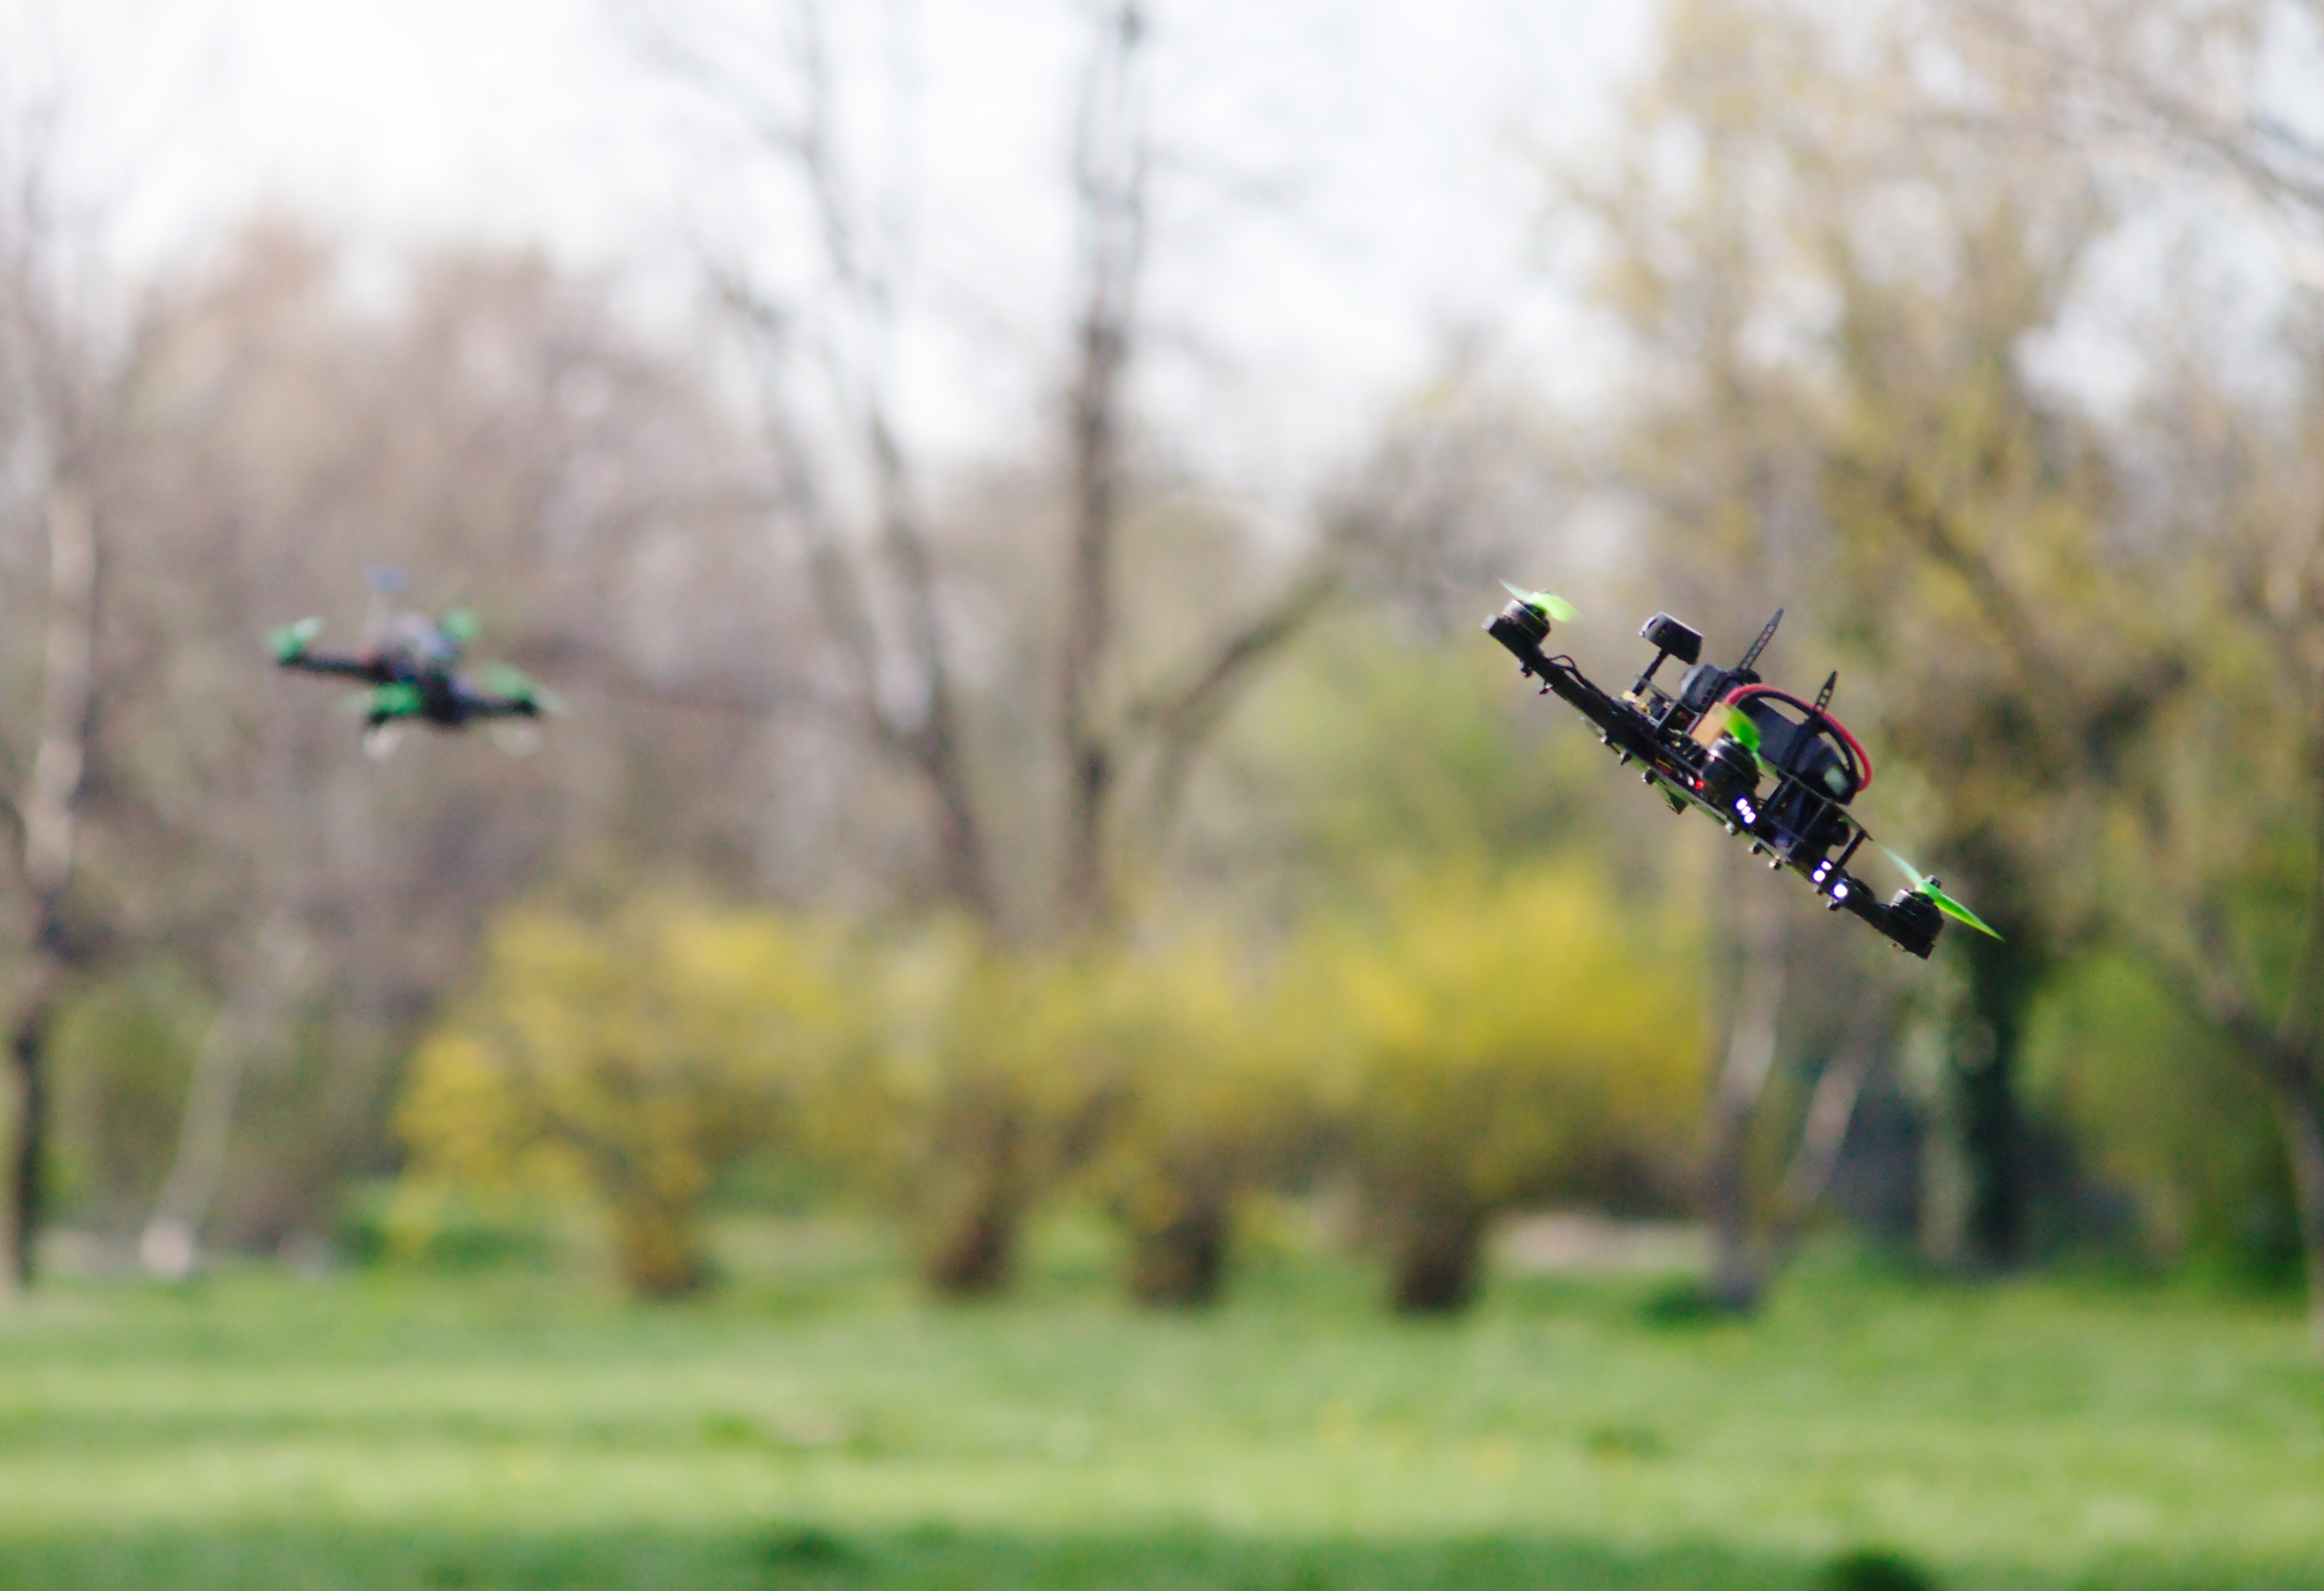 How to get the longest FPV range on your drone